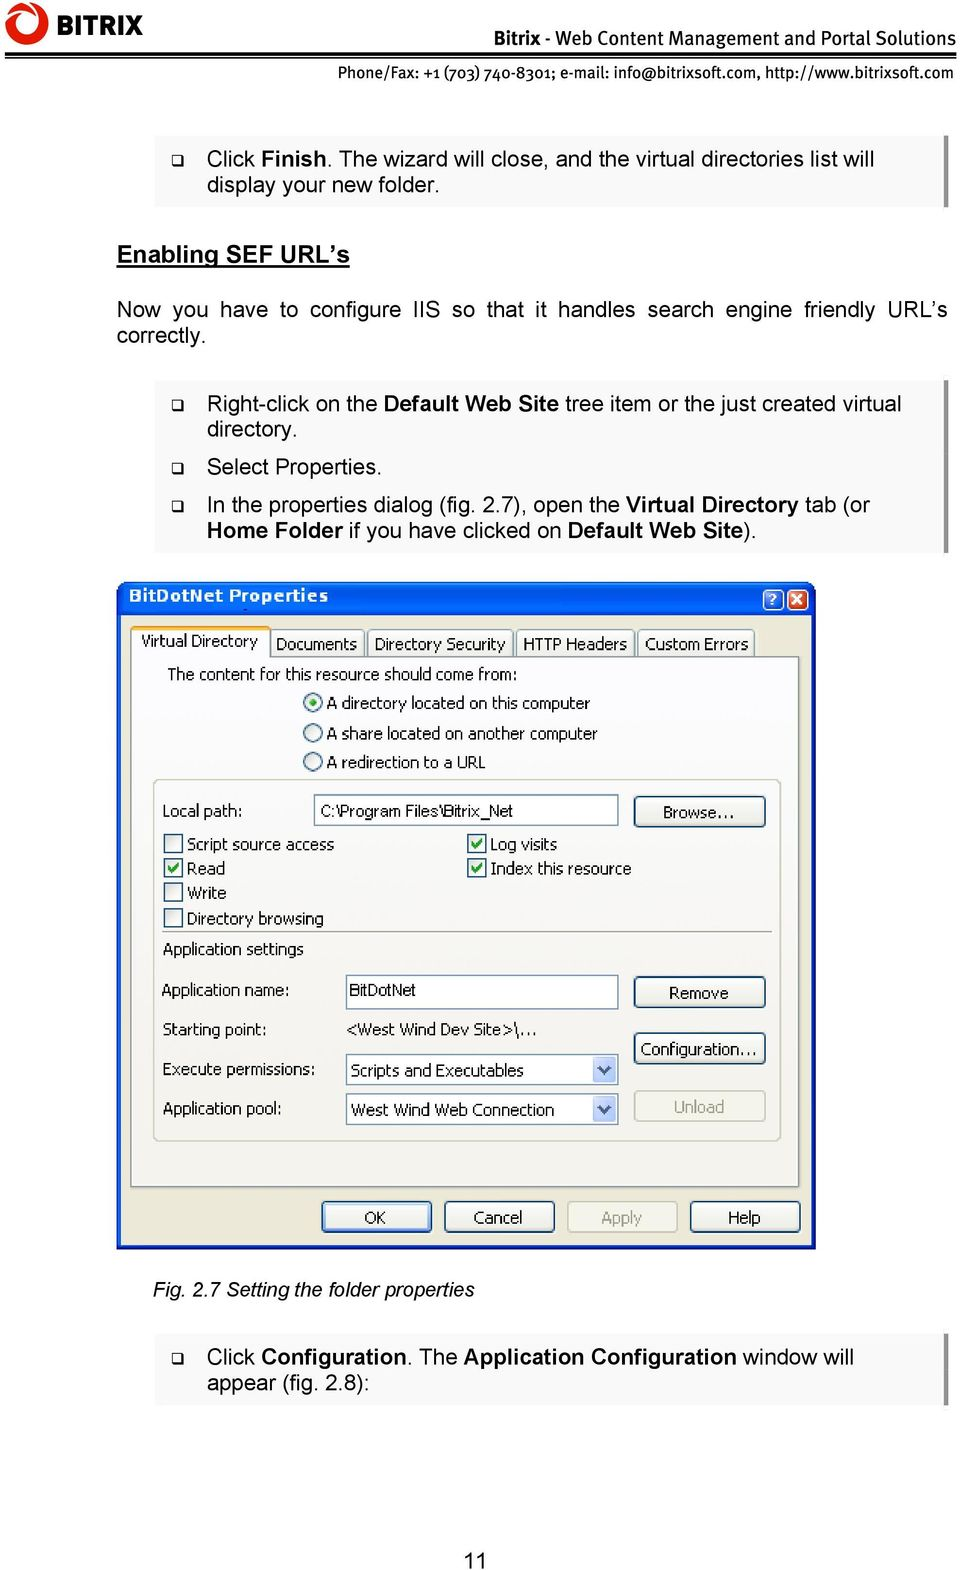 Right-click on the Default Web Site tree item or the just created virtual directory. Select Properties. In the properties dialog (fig. 2.